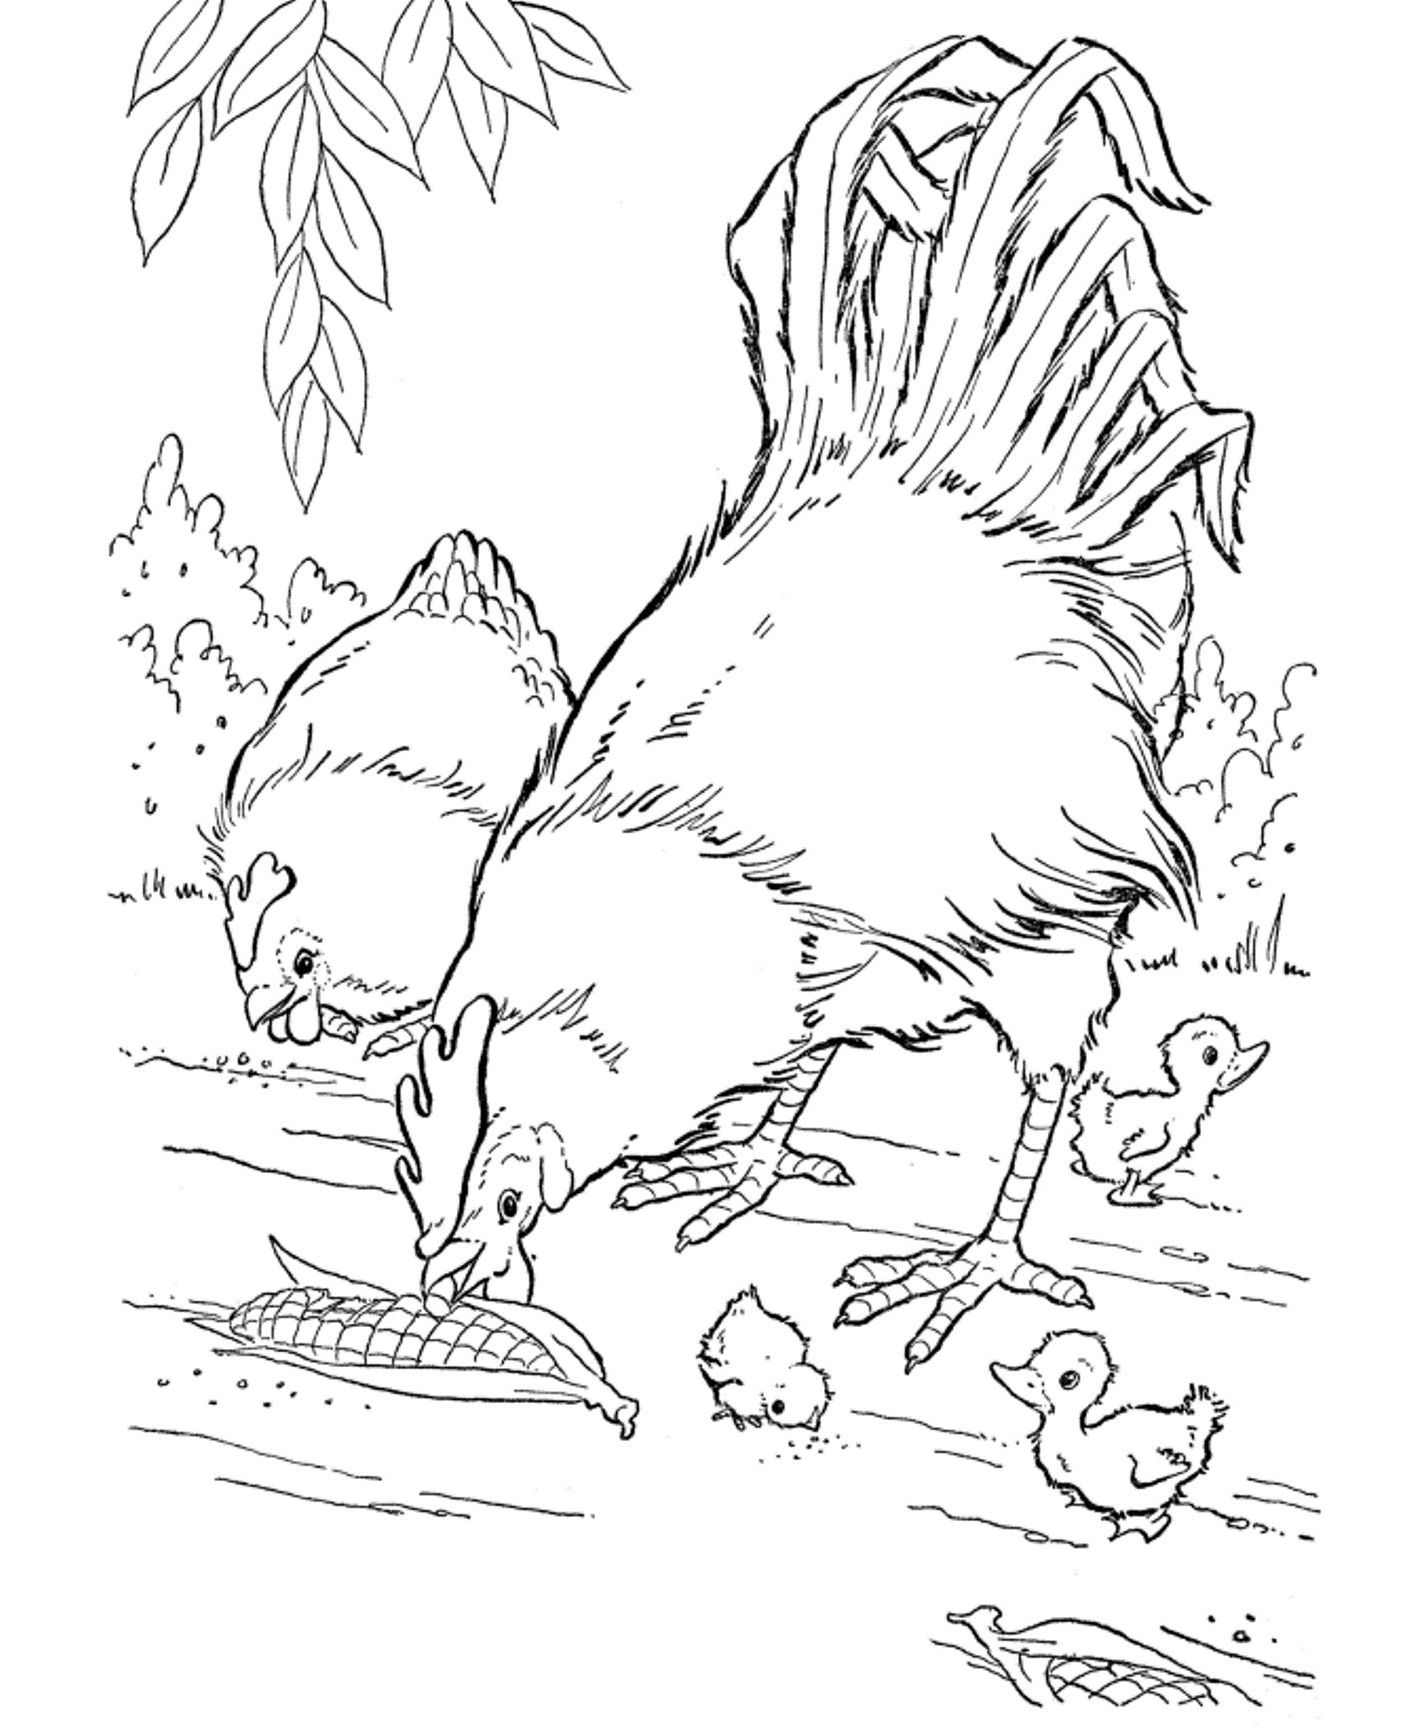 Realistic Chicken Coloring Pages To Print In 2020 Farm Animal Coloring Pages Farm Coloring Pages Chicken Coloring Pages